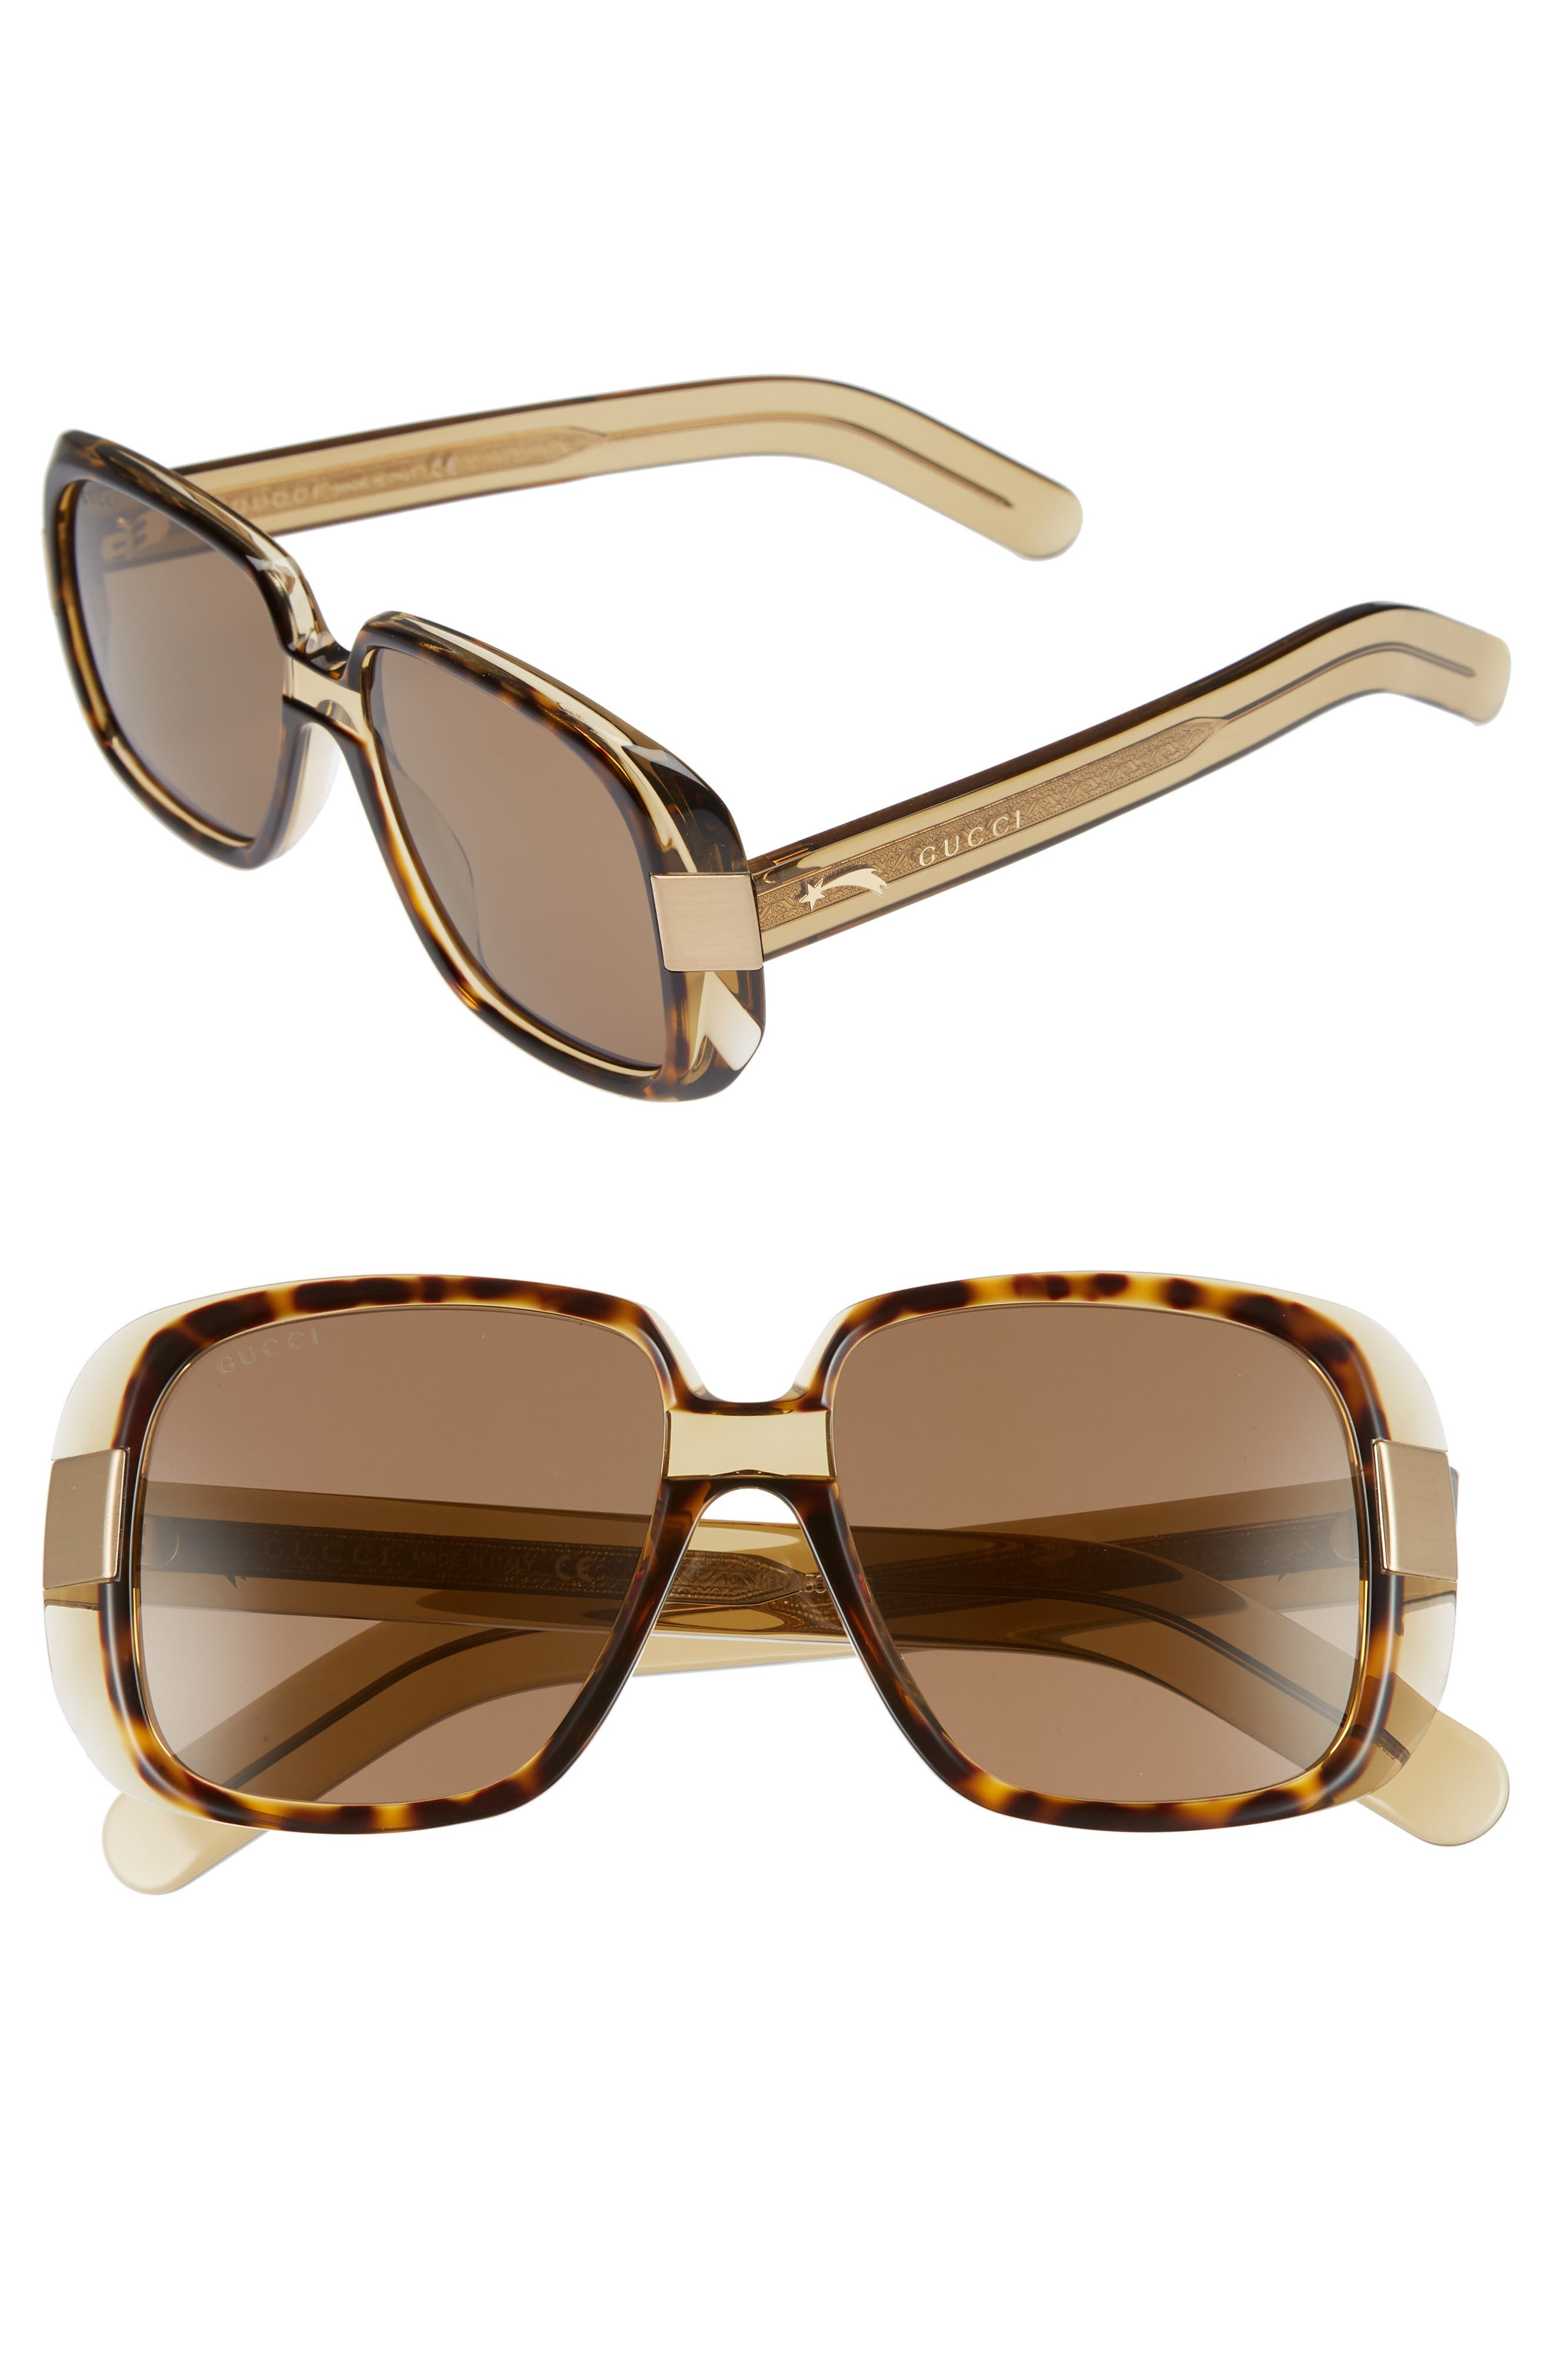 Cruise 51mm Square Sunglasses,                         Main,                         color,